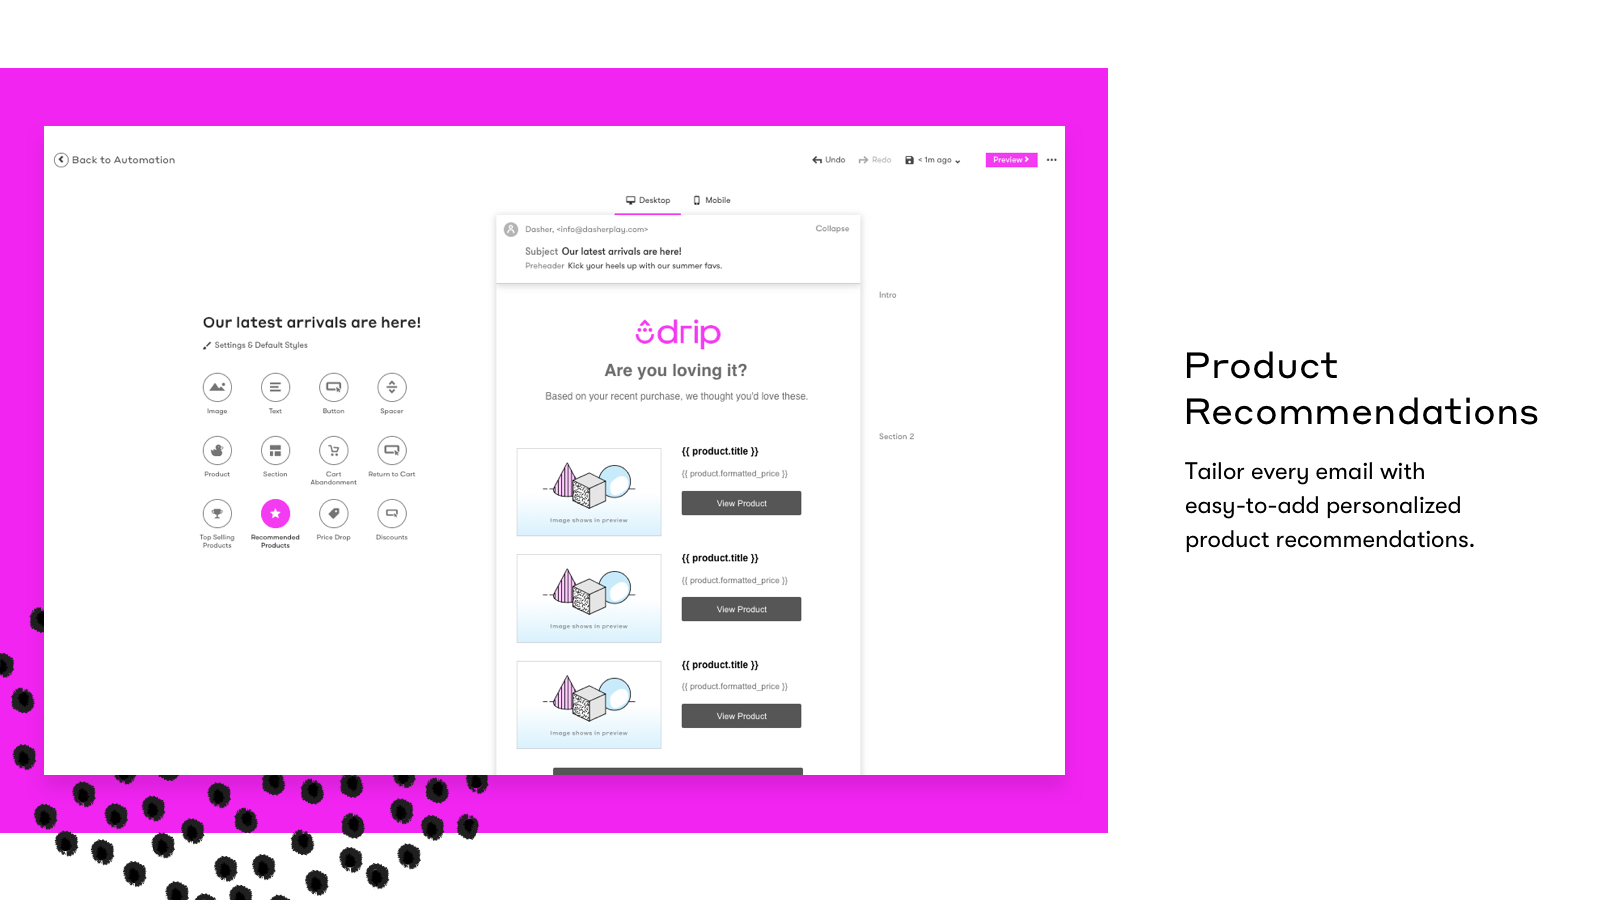 Tailor every email with easy-to-add product recommendations